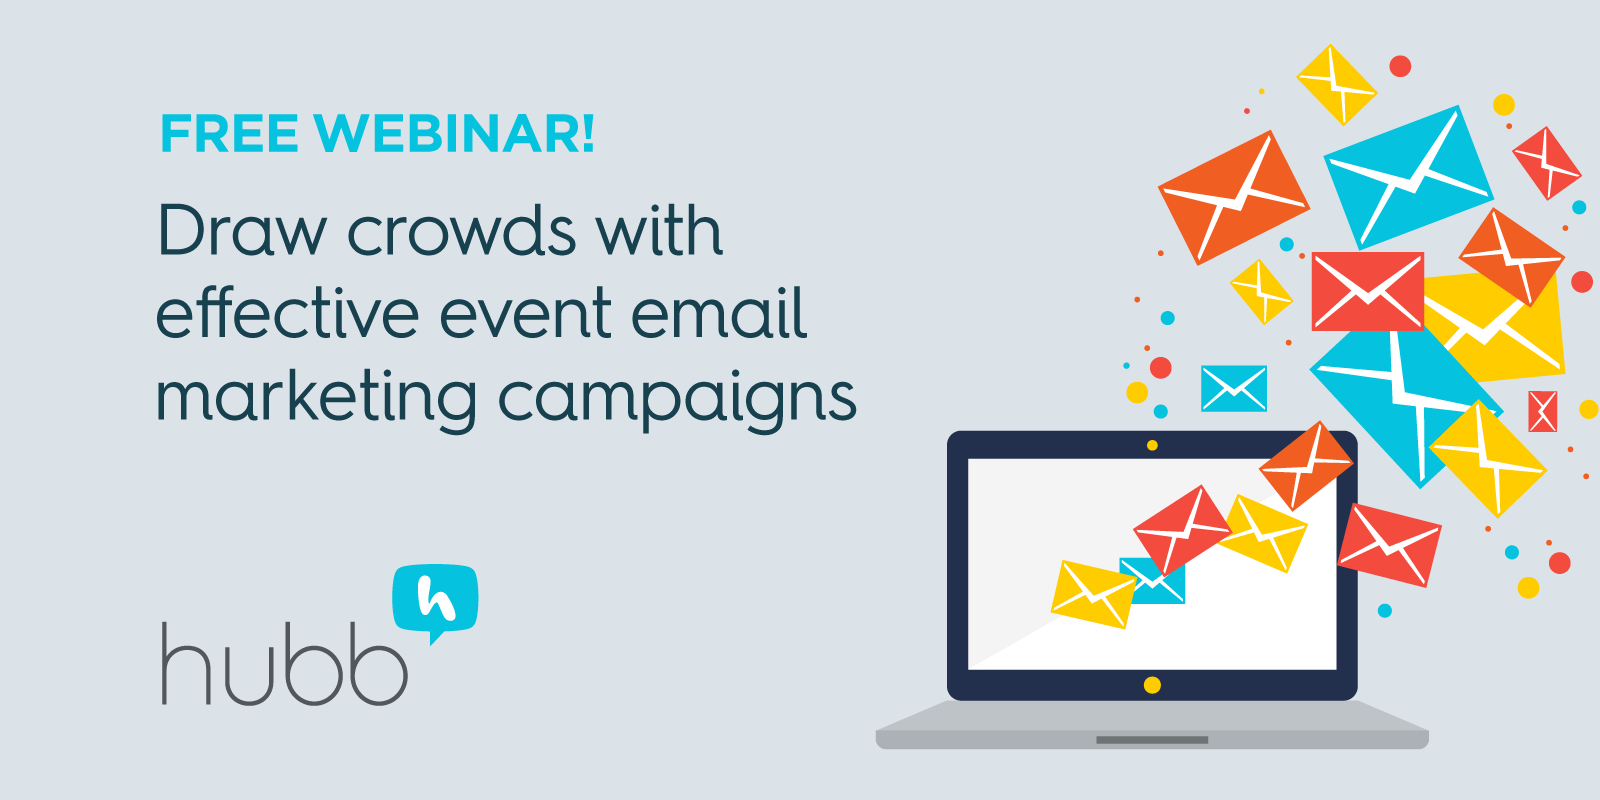 [Webinar] Draw crowds with effective event email marketing